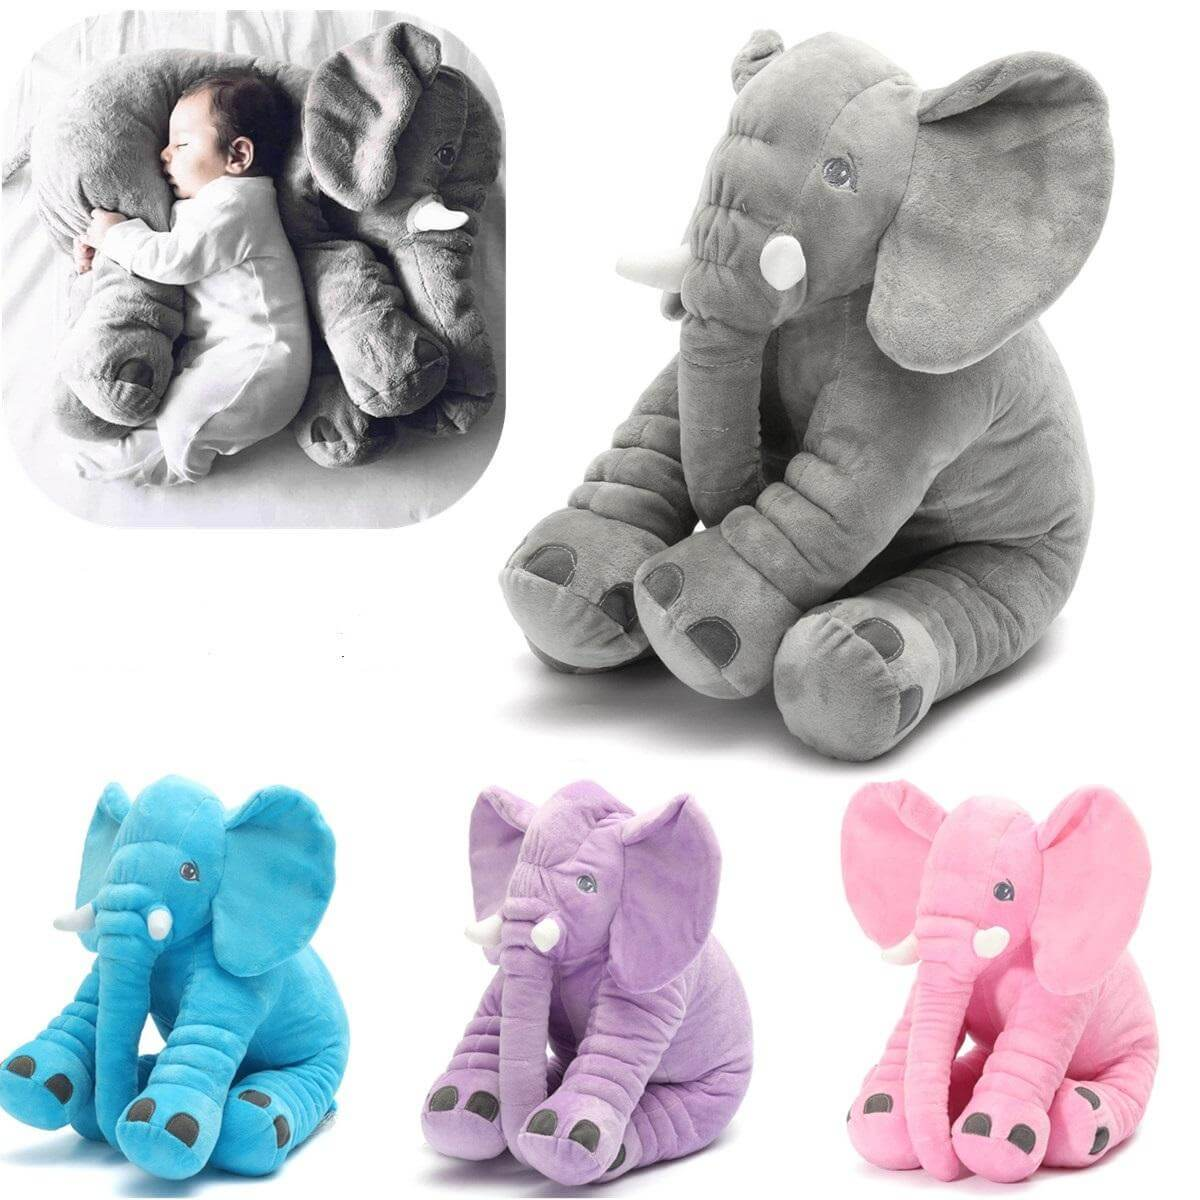 AnimalLove™ Stuffed Animal Elephant Pillow for Toddlers, Infants or Kids